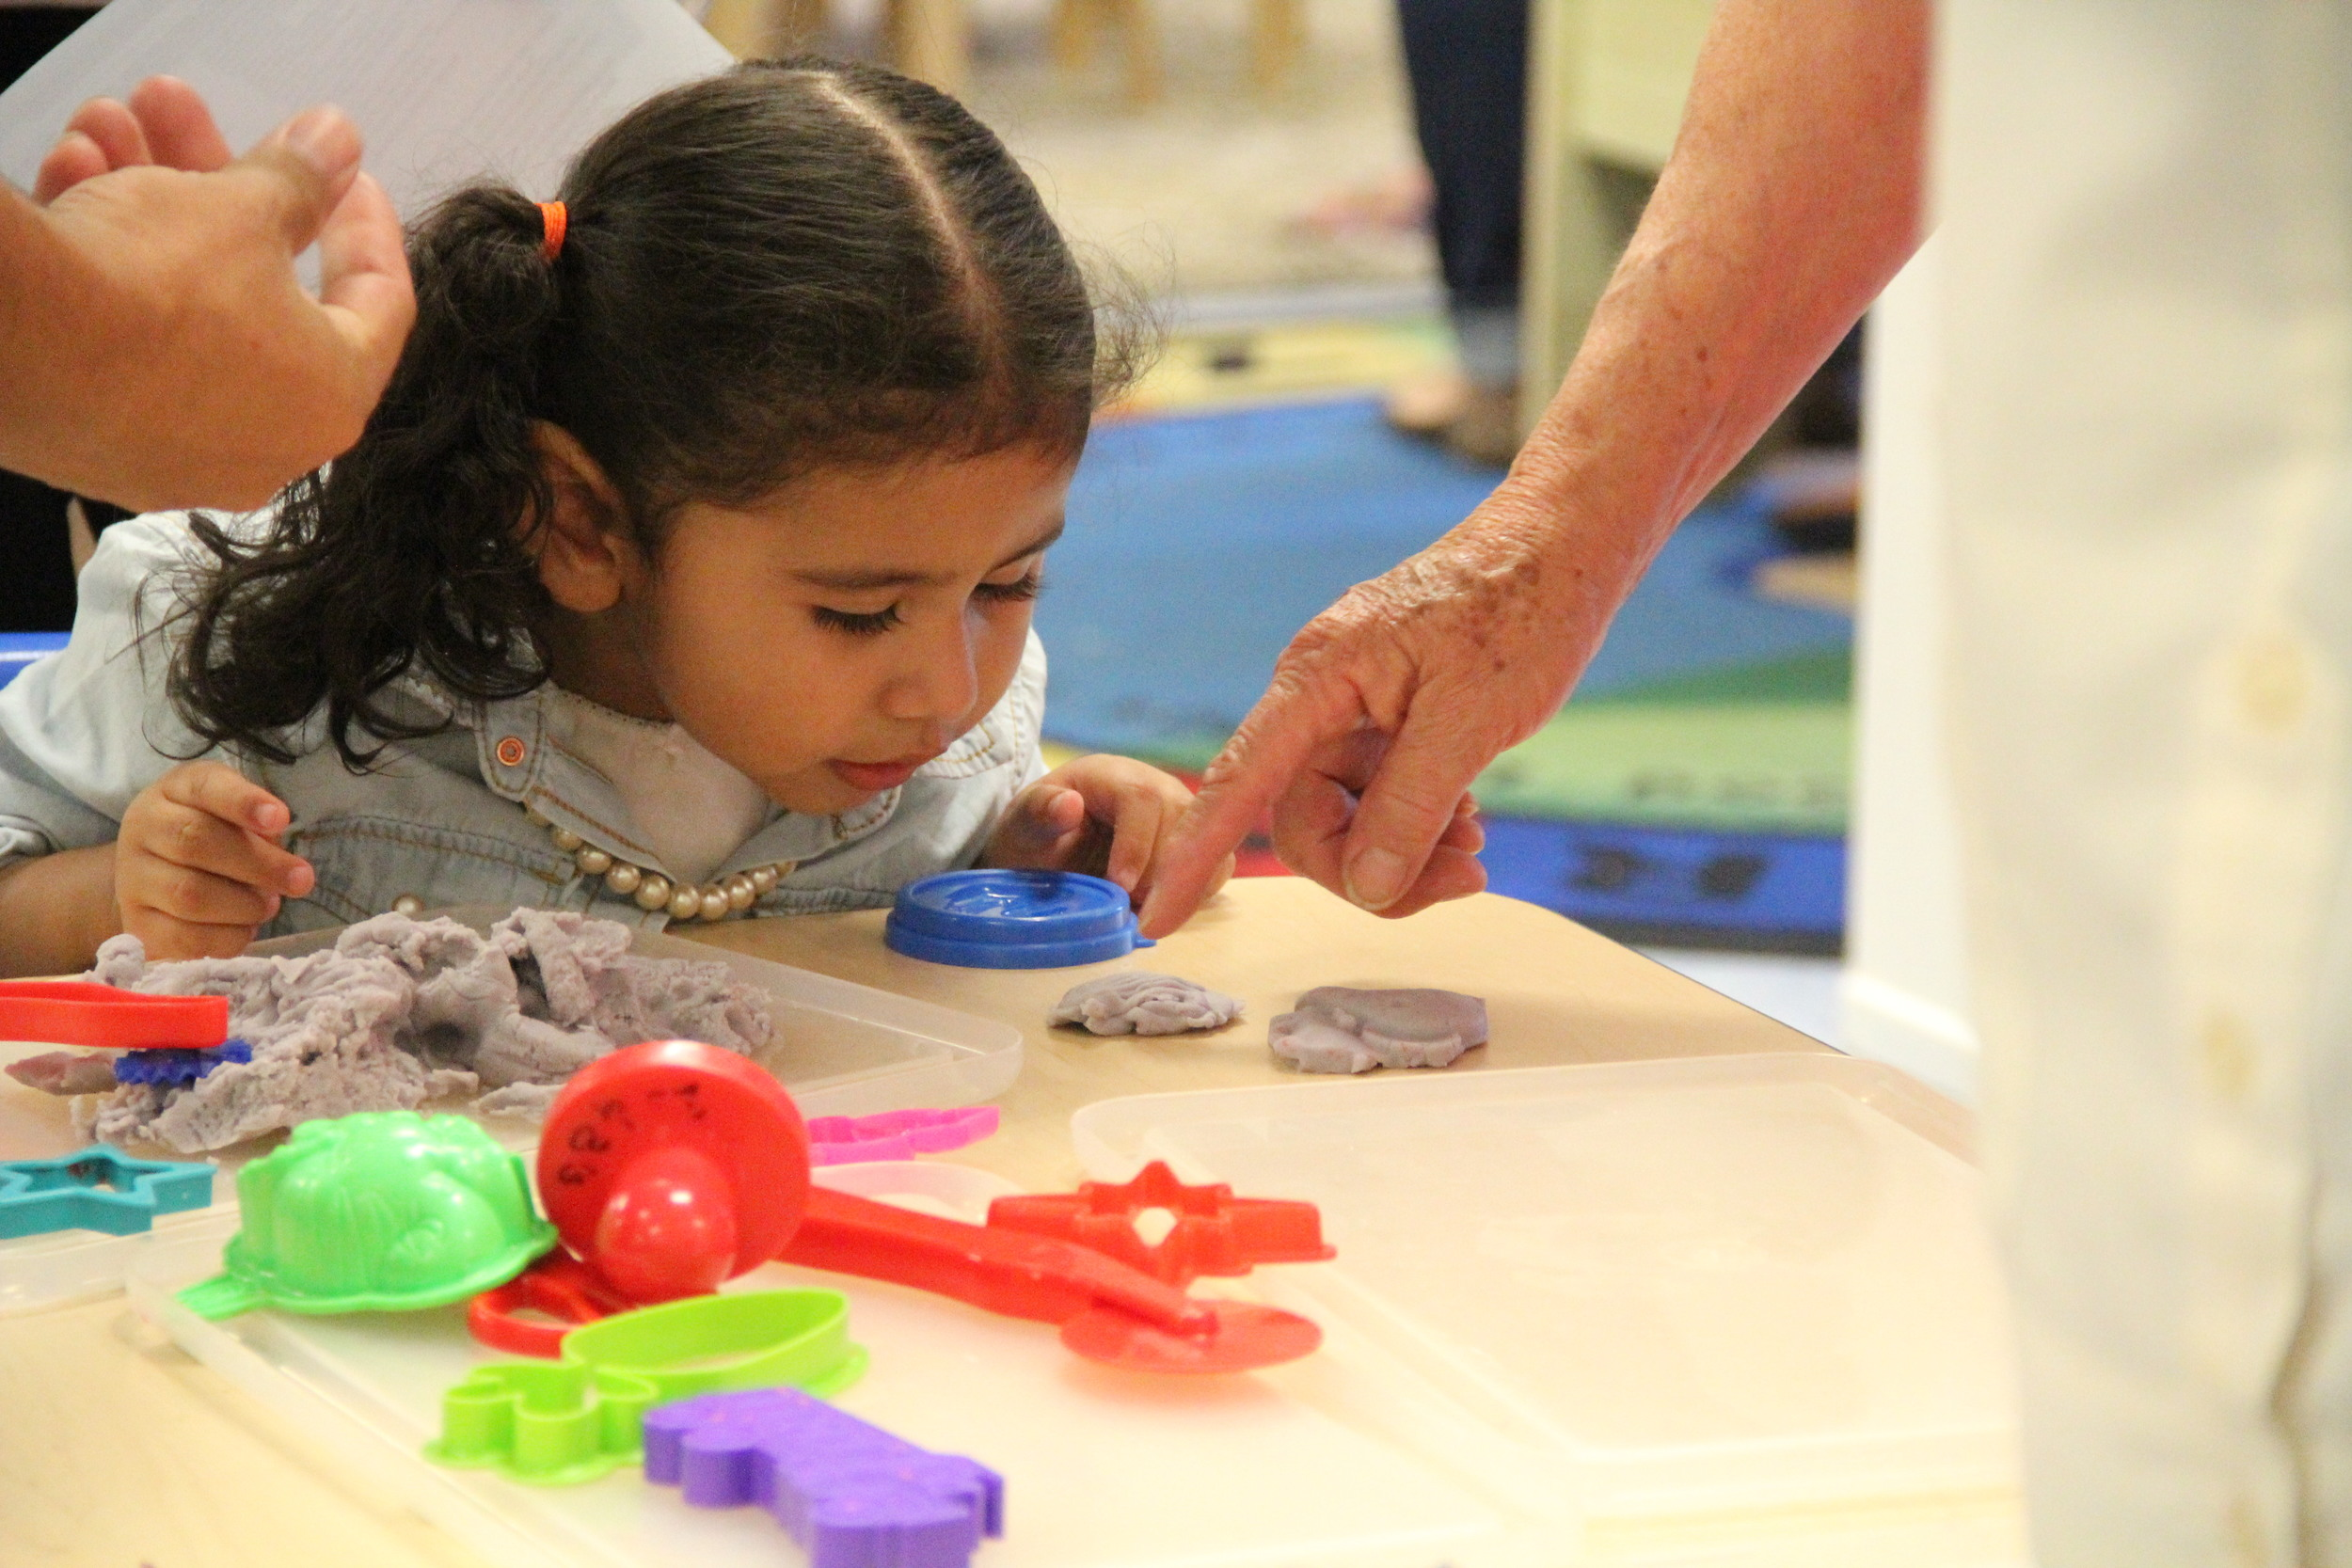 We use lots of tactile toys and activities in order to engage the kids.